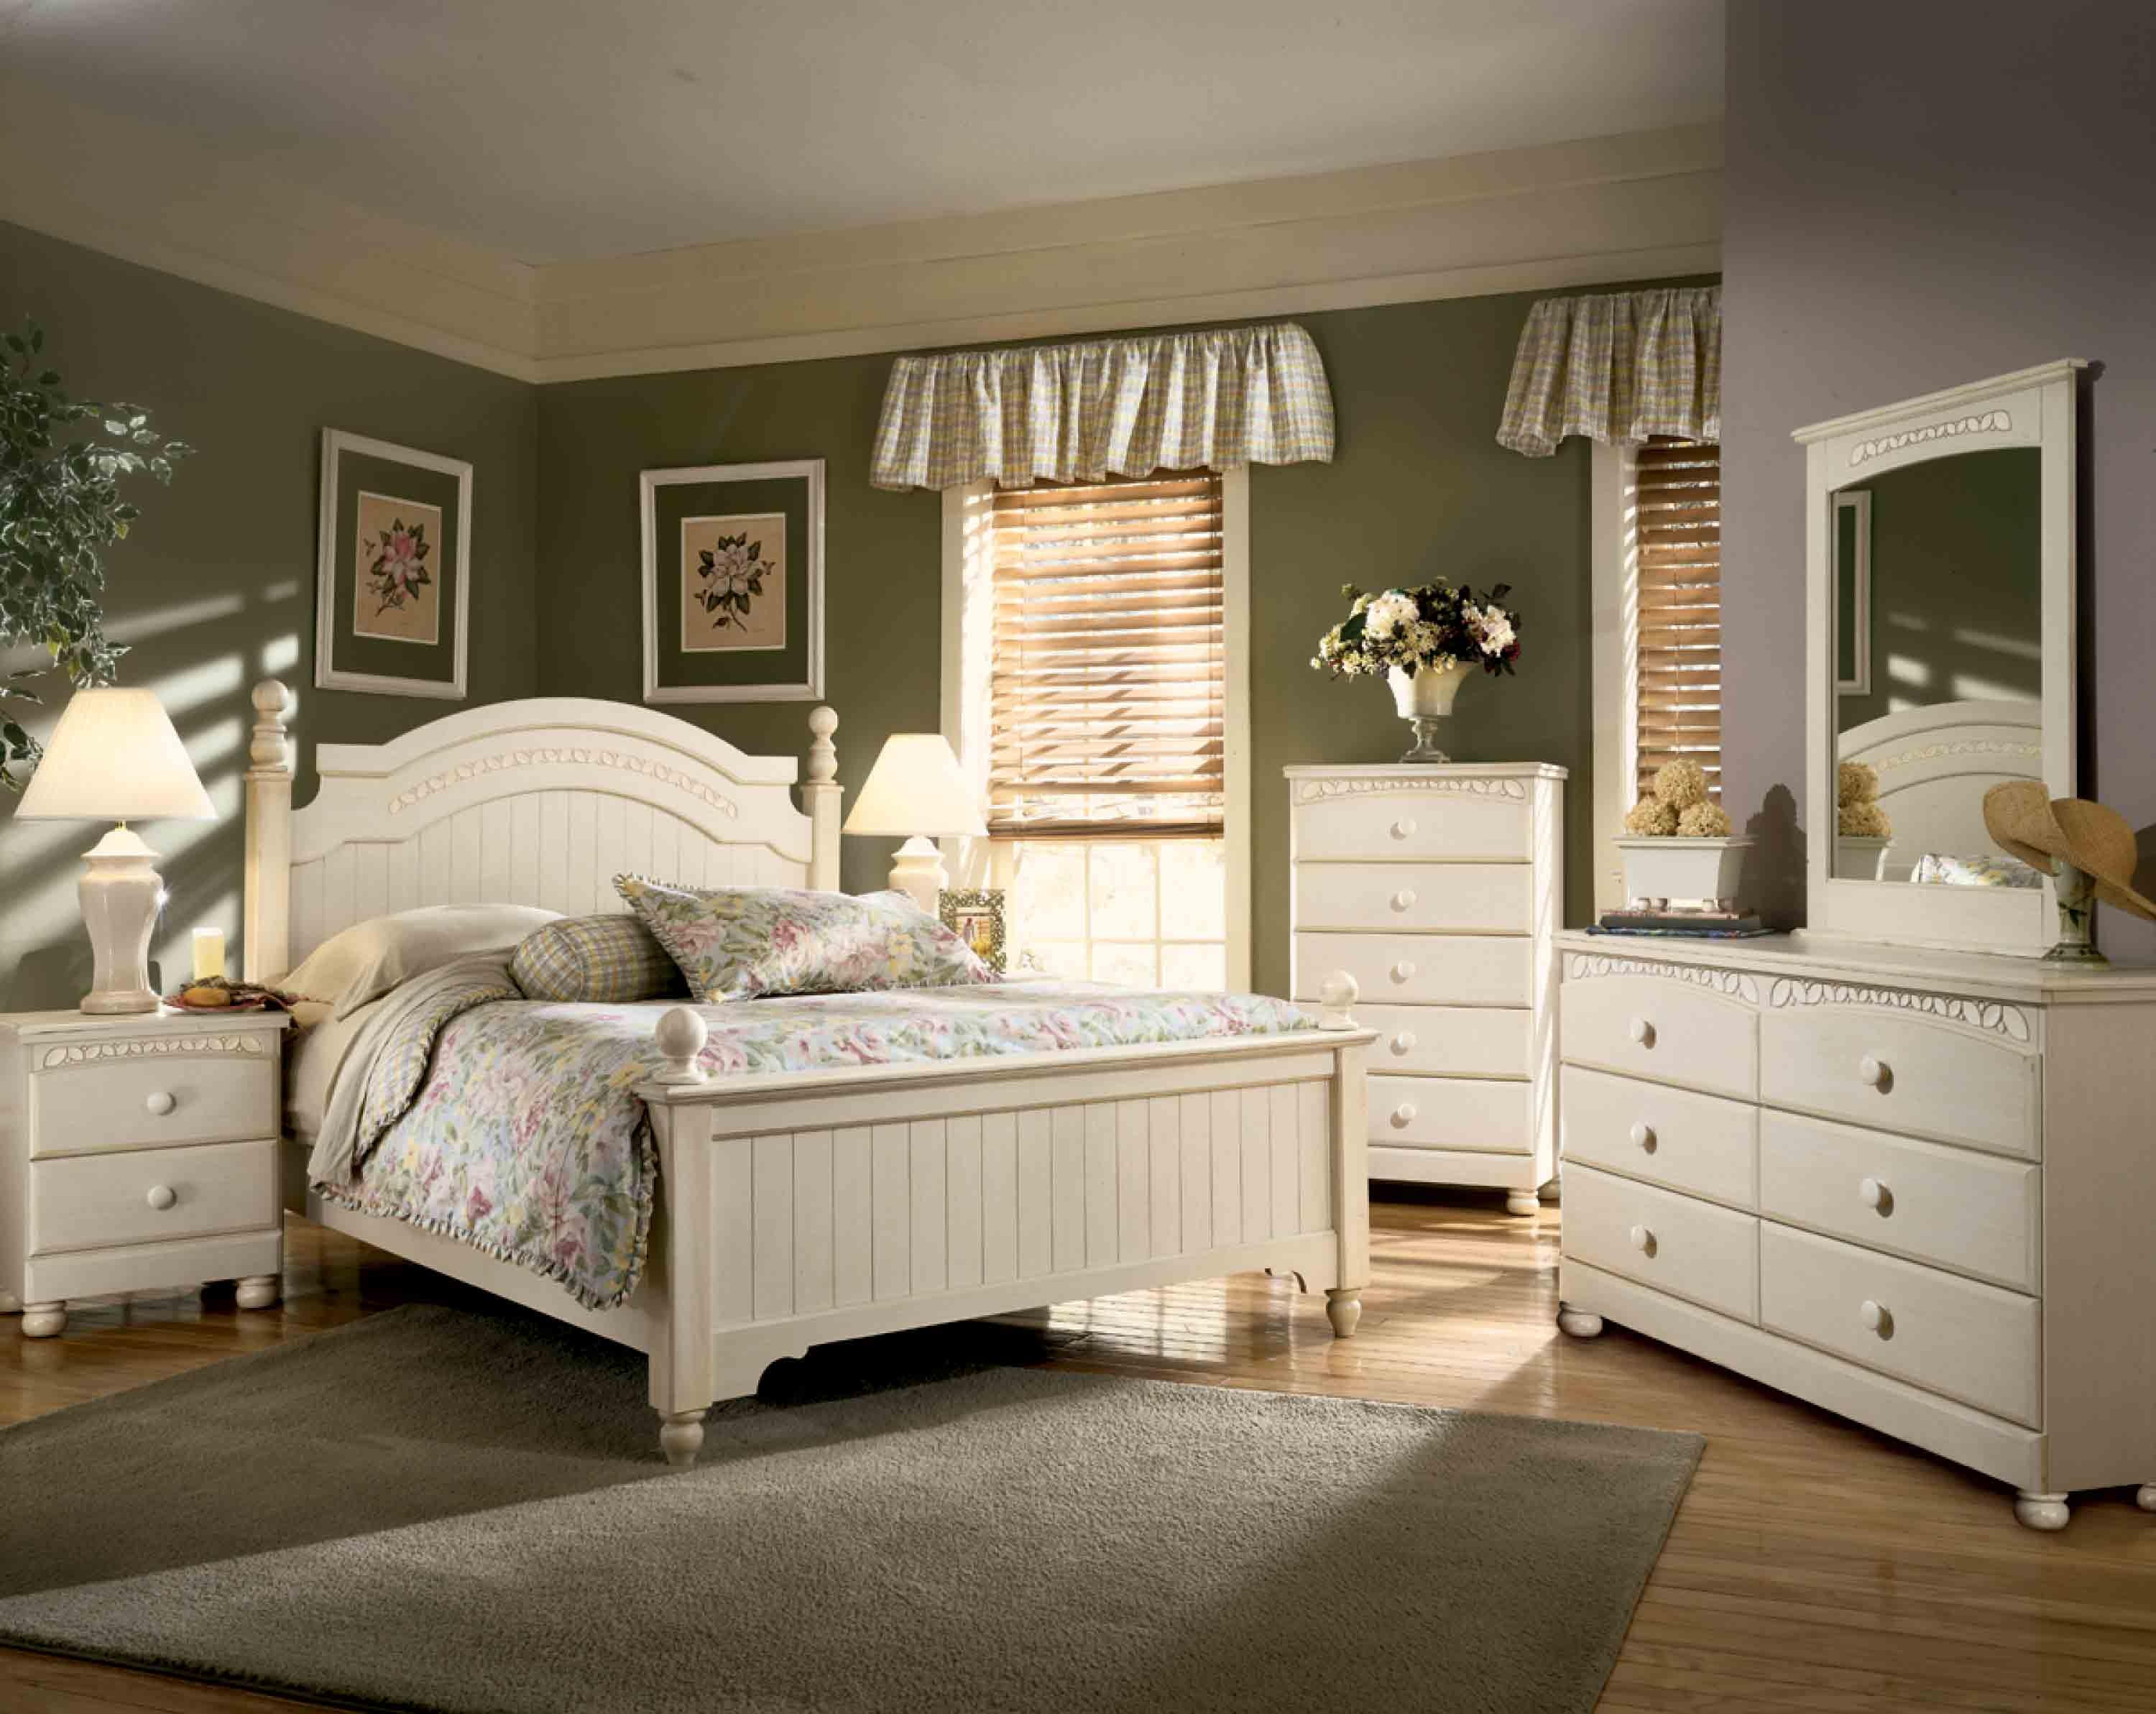 bedrooms bemalas sale scott north ashley bedroom poster of sets furniture best s com shore gallery cleveland tn bed